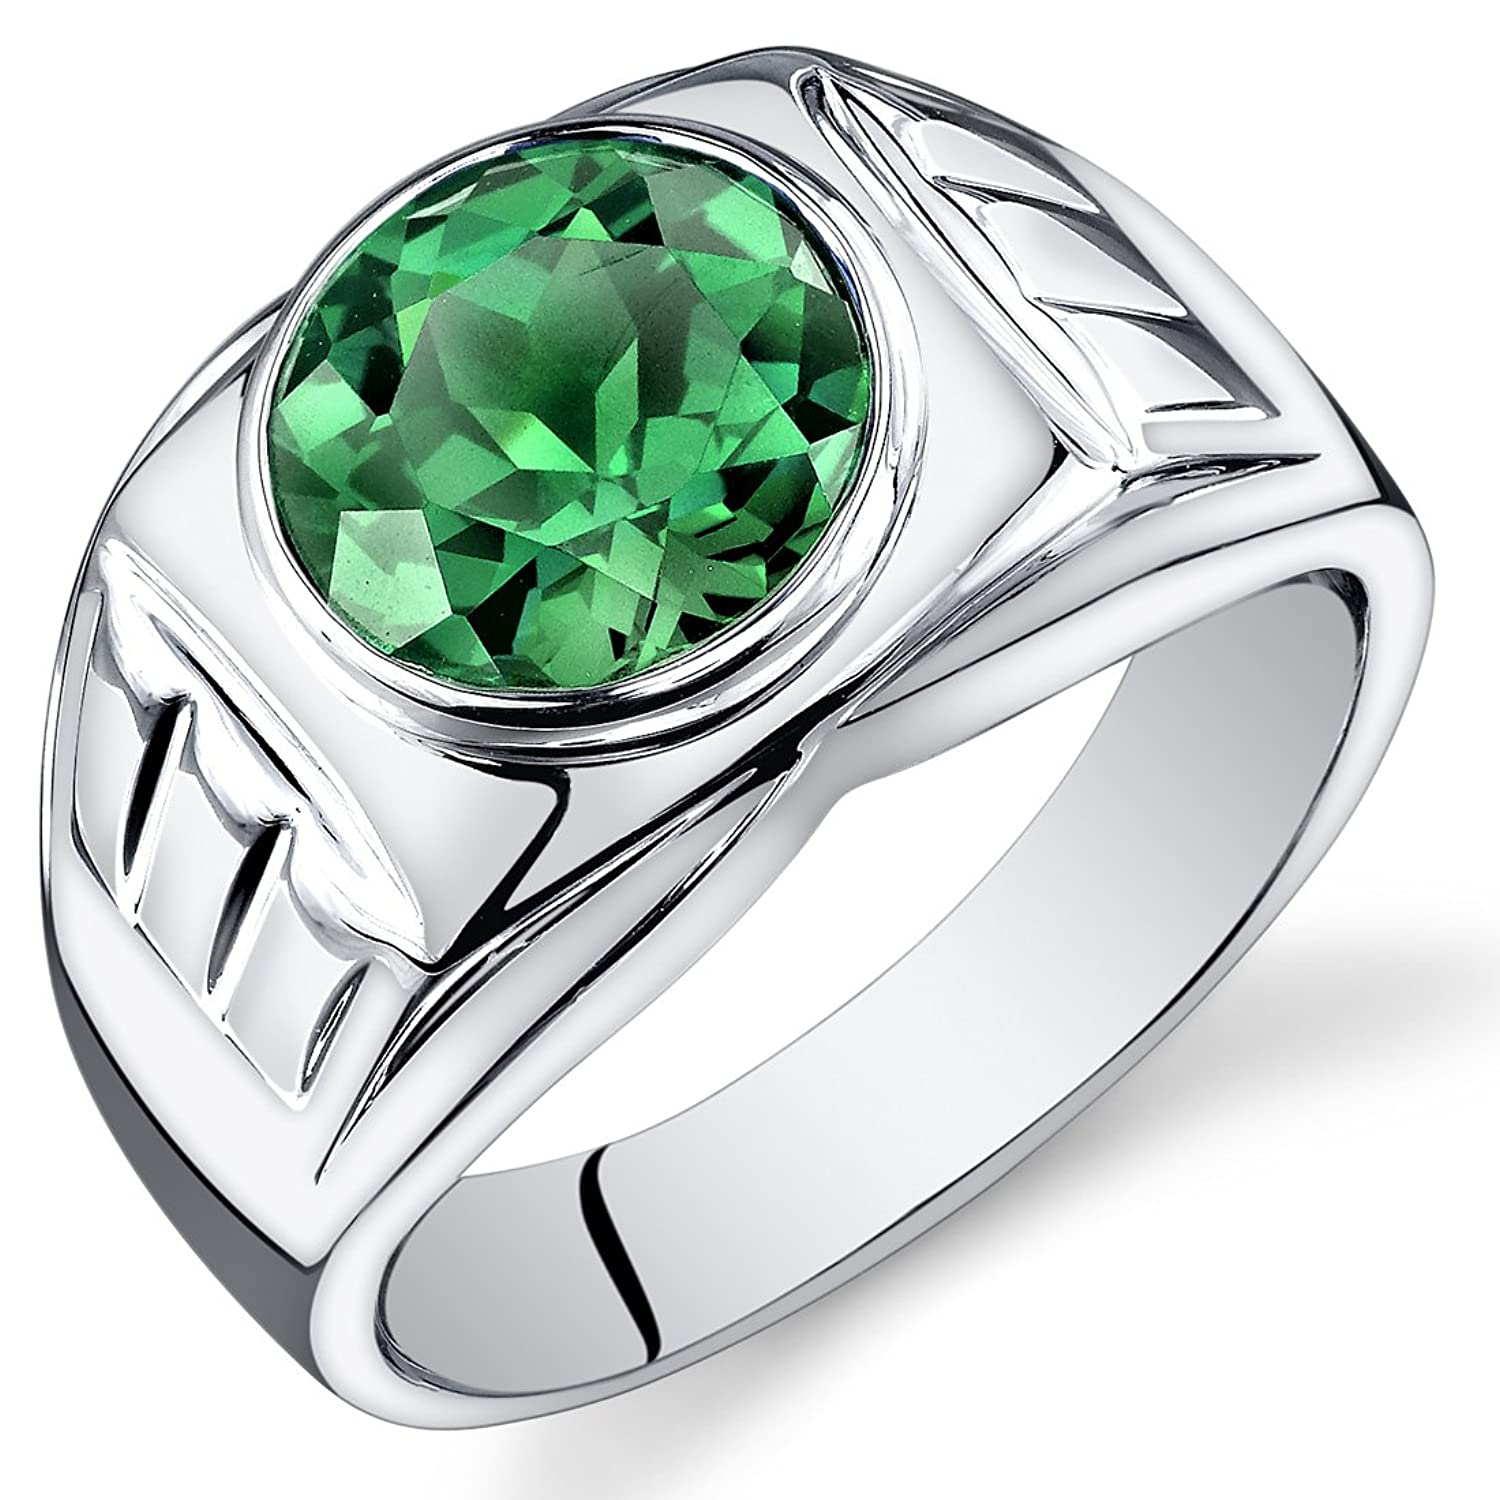 sterling square products image fine ring solitaire rings women emerald jewelrypalace jewelry product silver for created green